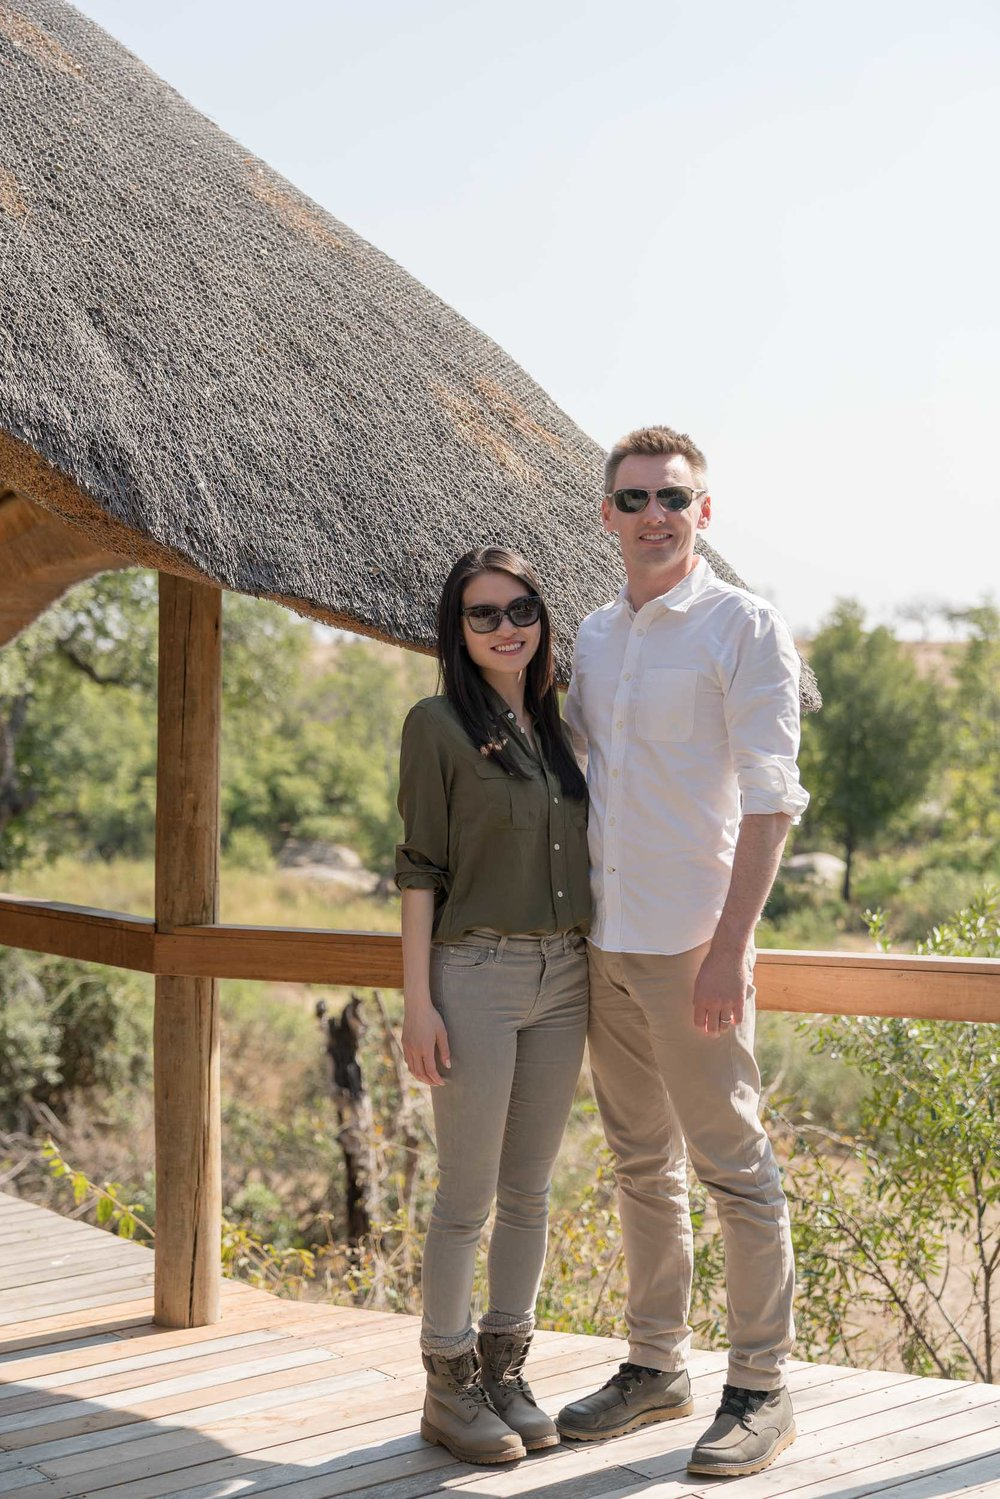 the_getaway_edit_south_africa_safari_londolozi_game_reserve-44.jpg